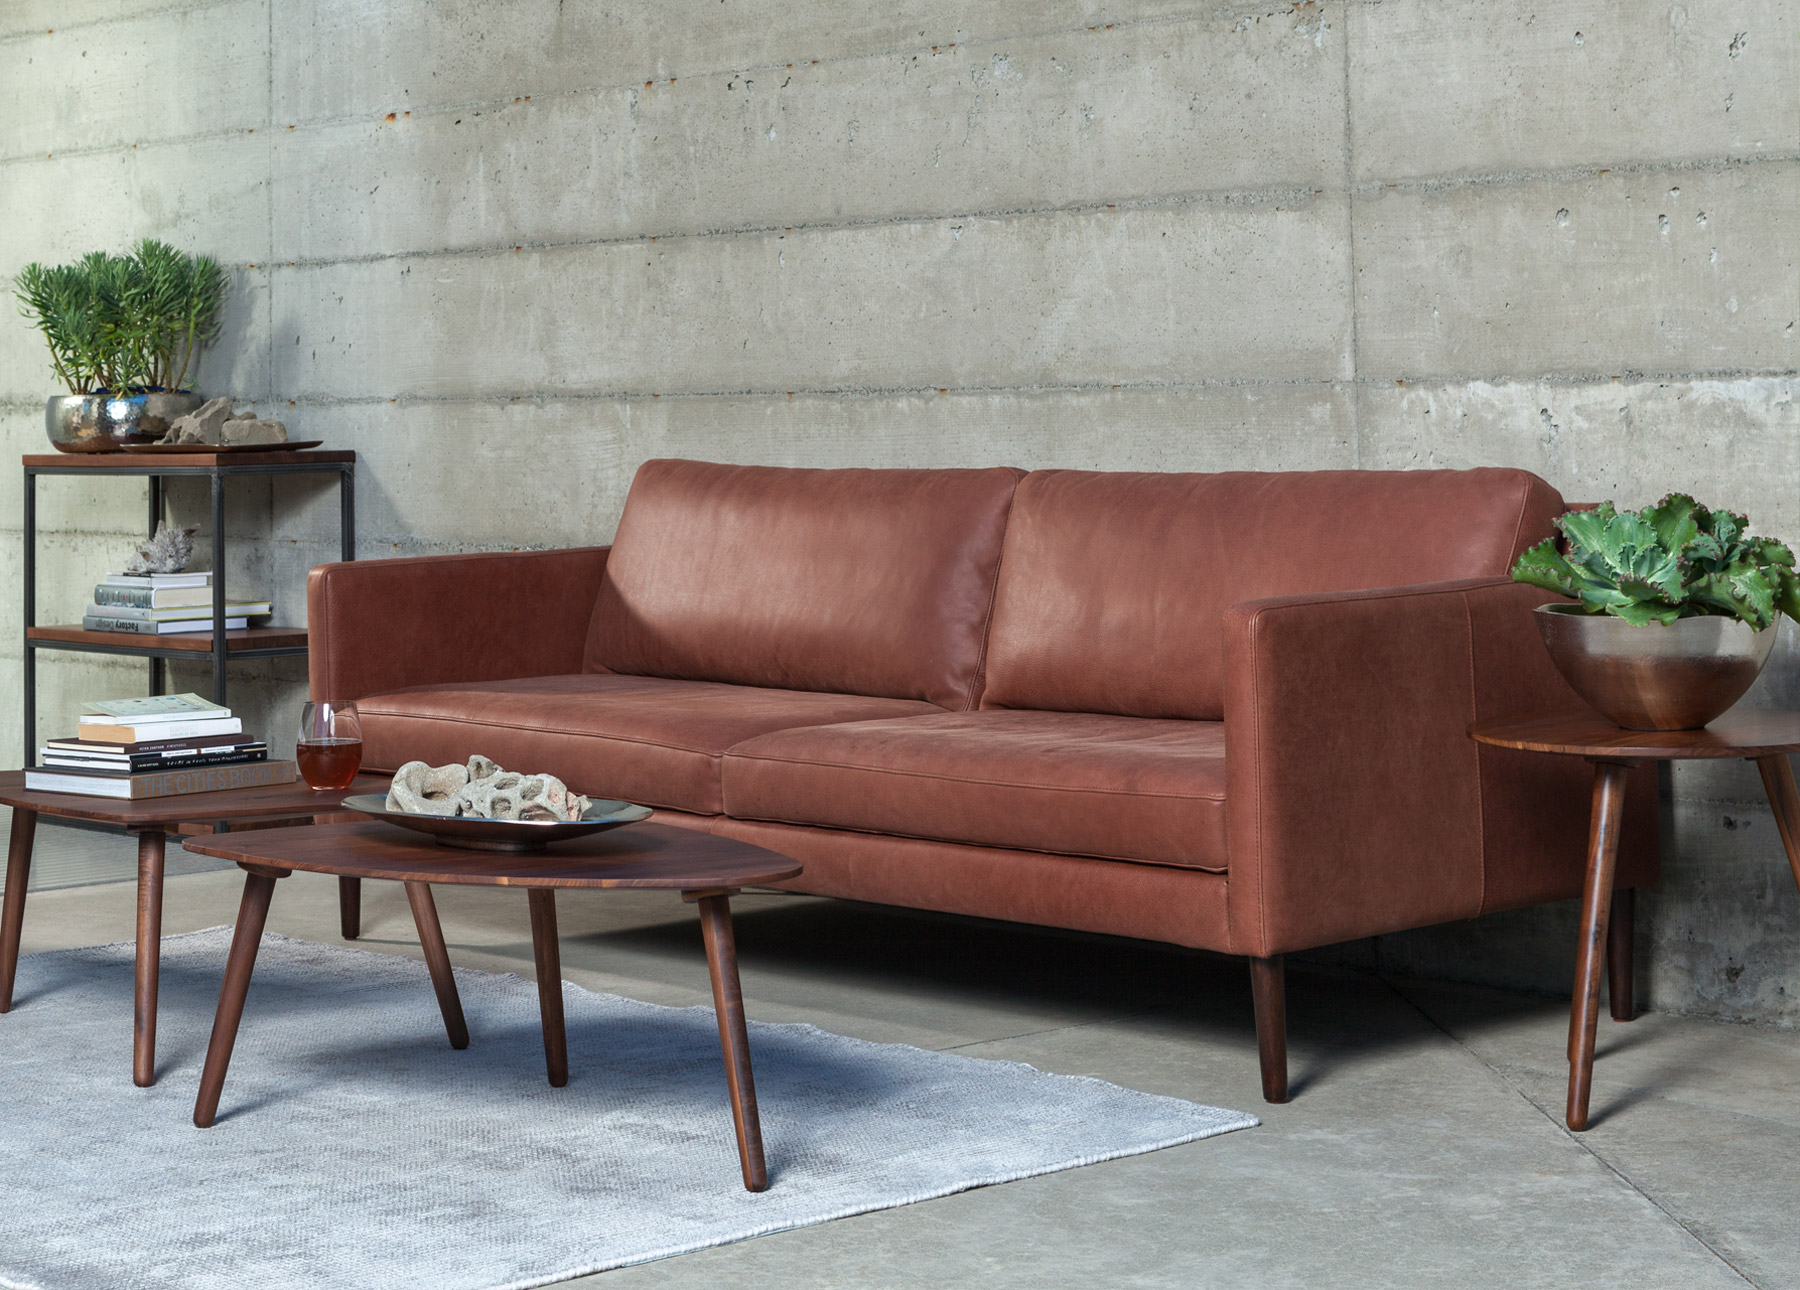 Echo Primo Sedona Brown Sofa with rug, coffee tables, and side table